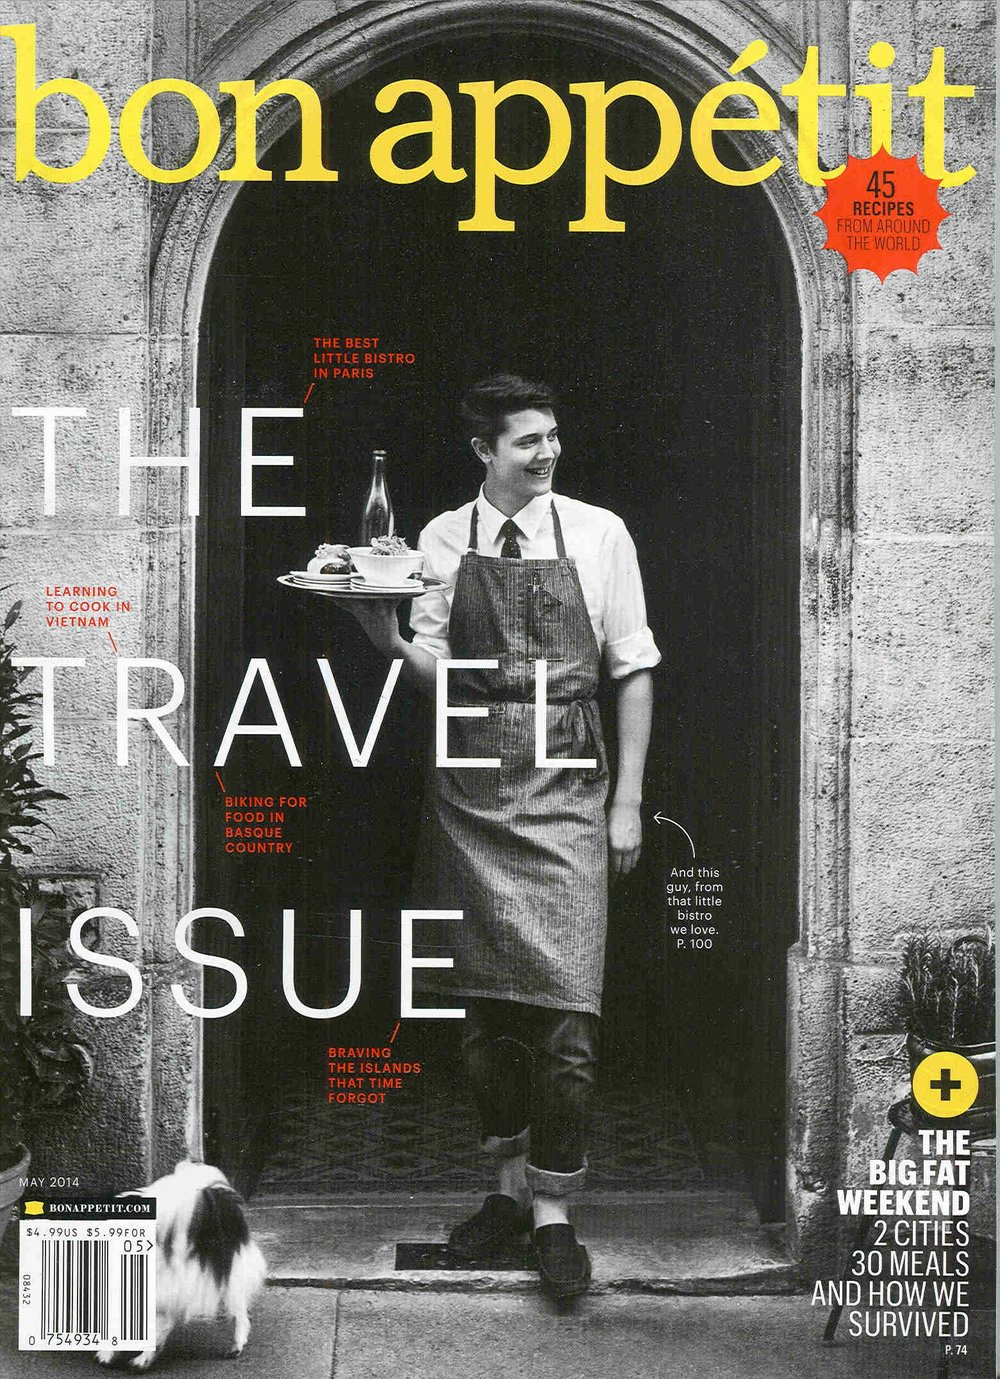 While working as a part-time waiter to fund his short films, Gabriel made the May 2014 cover of Bon Appétit.